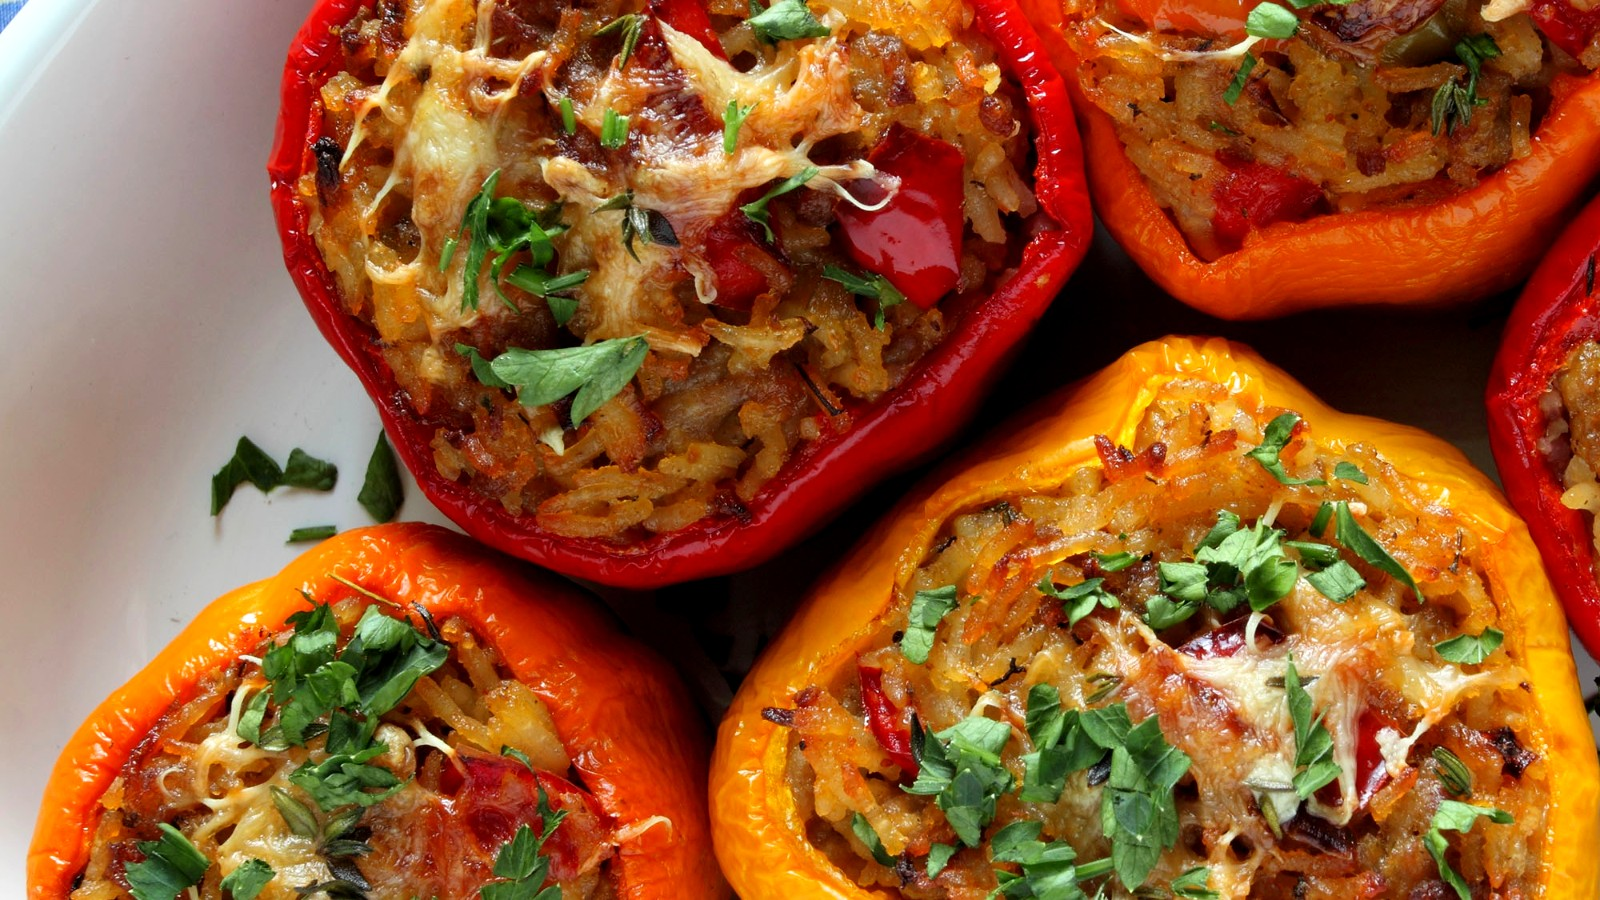 Image of Bison Stuffed Bell Peppers